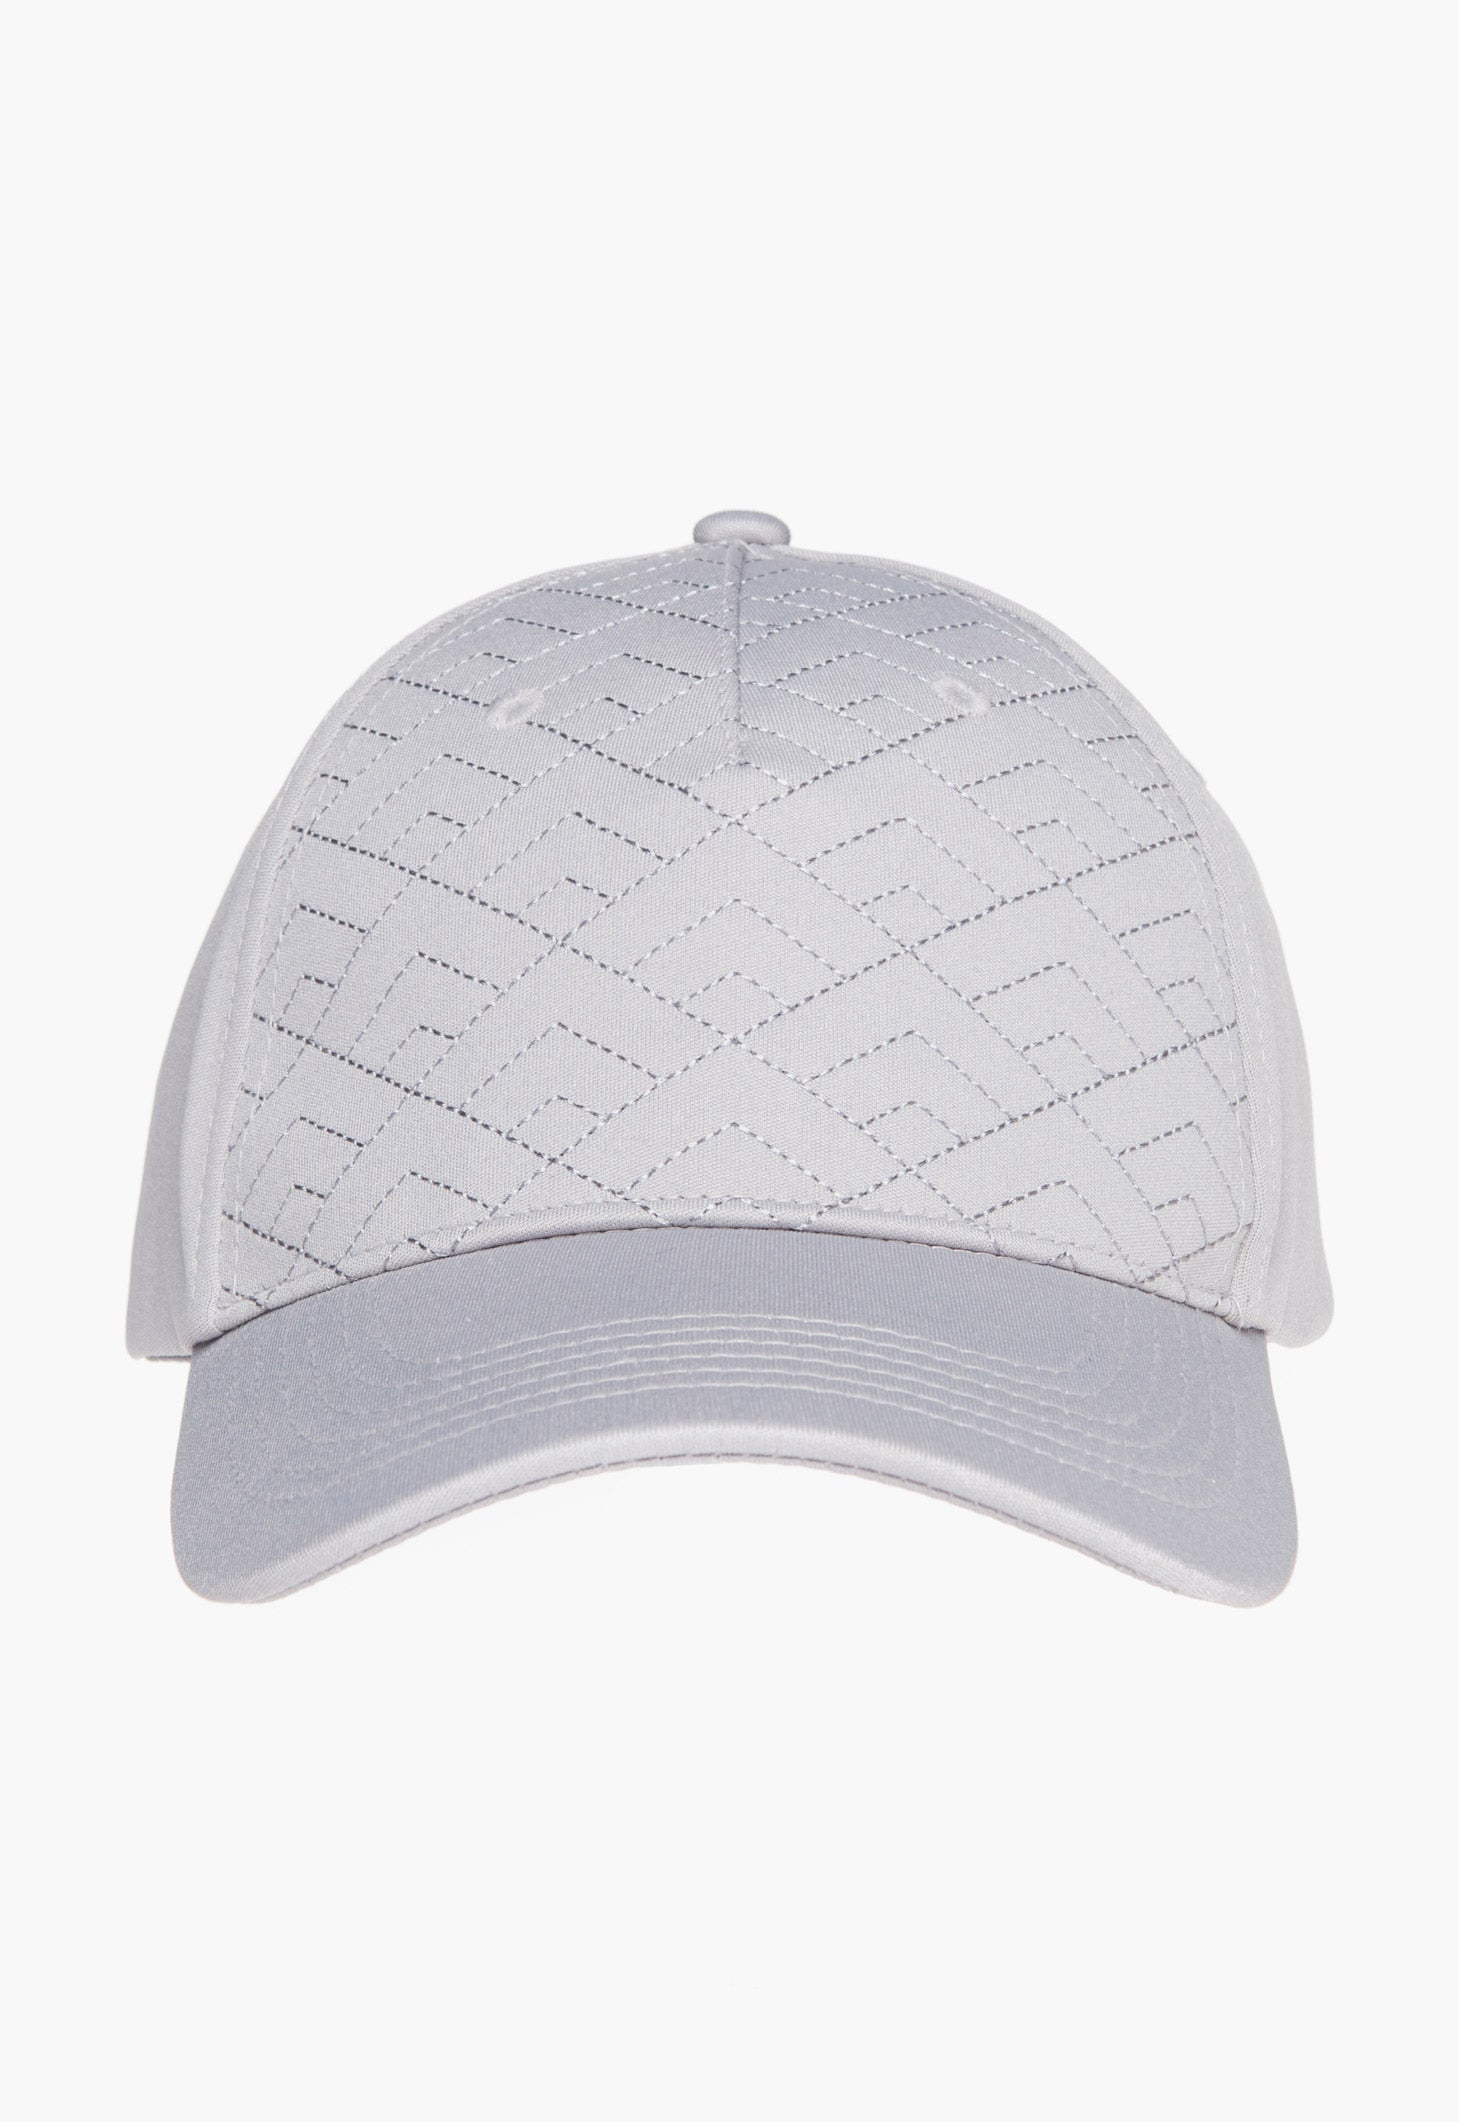 Diamond Waves Cap